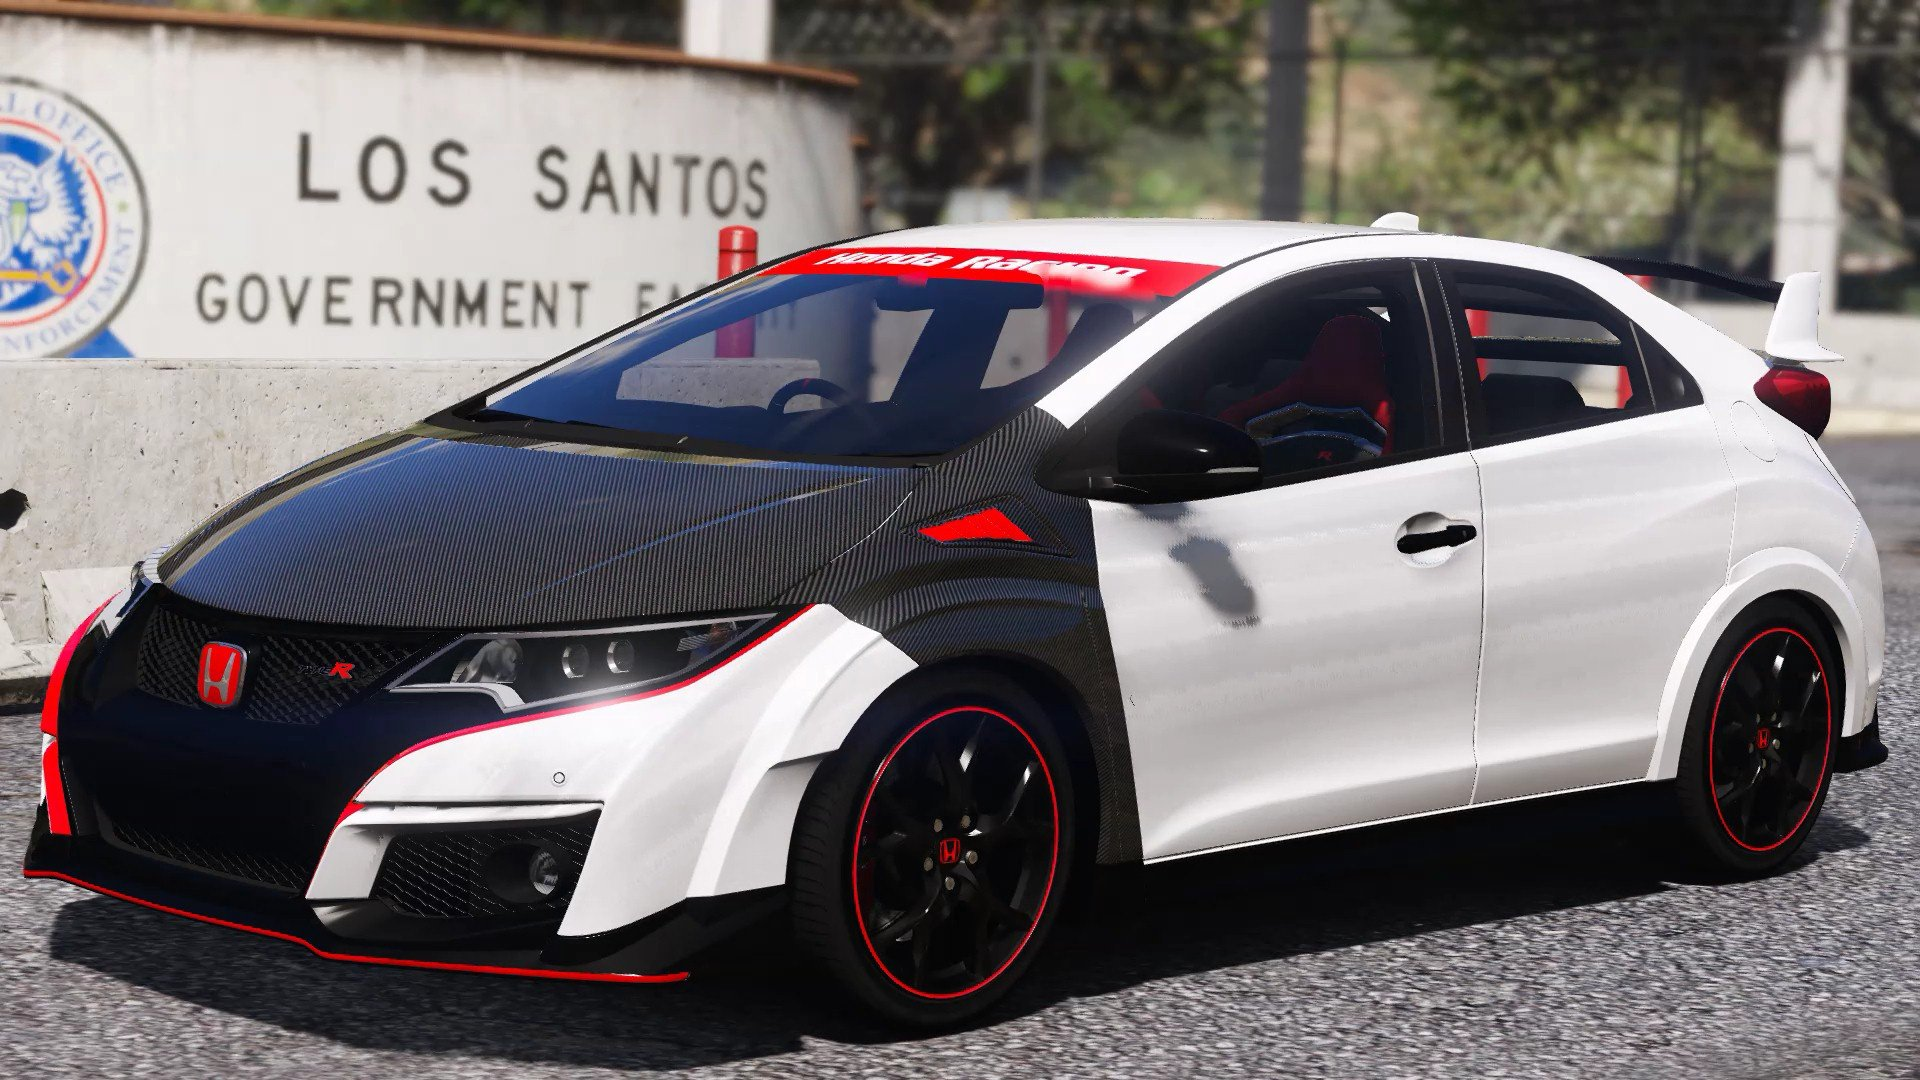 honda civic type r fk2 carbon parts livery gta5. Black Bedroom Furniture Sets. Home Design Ideas